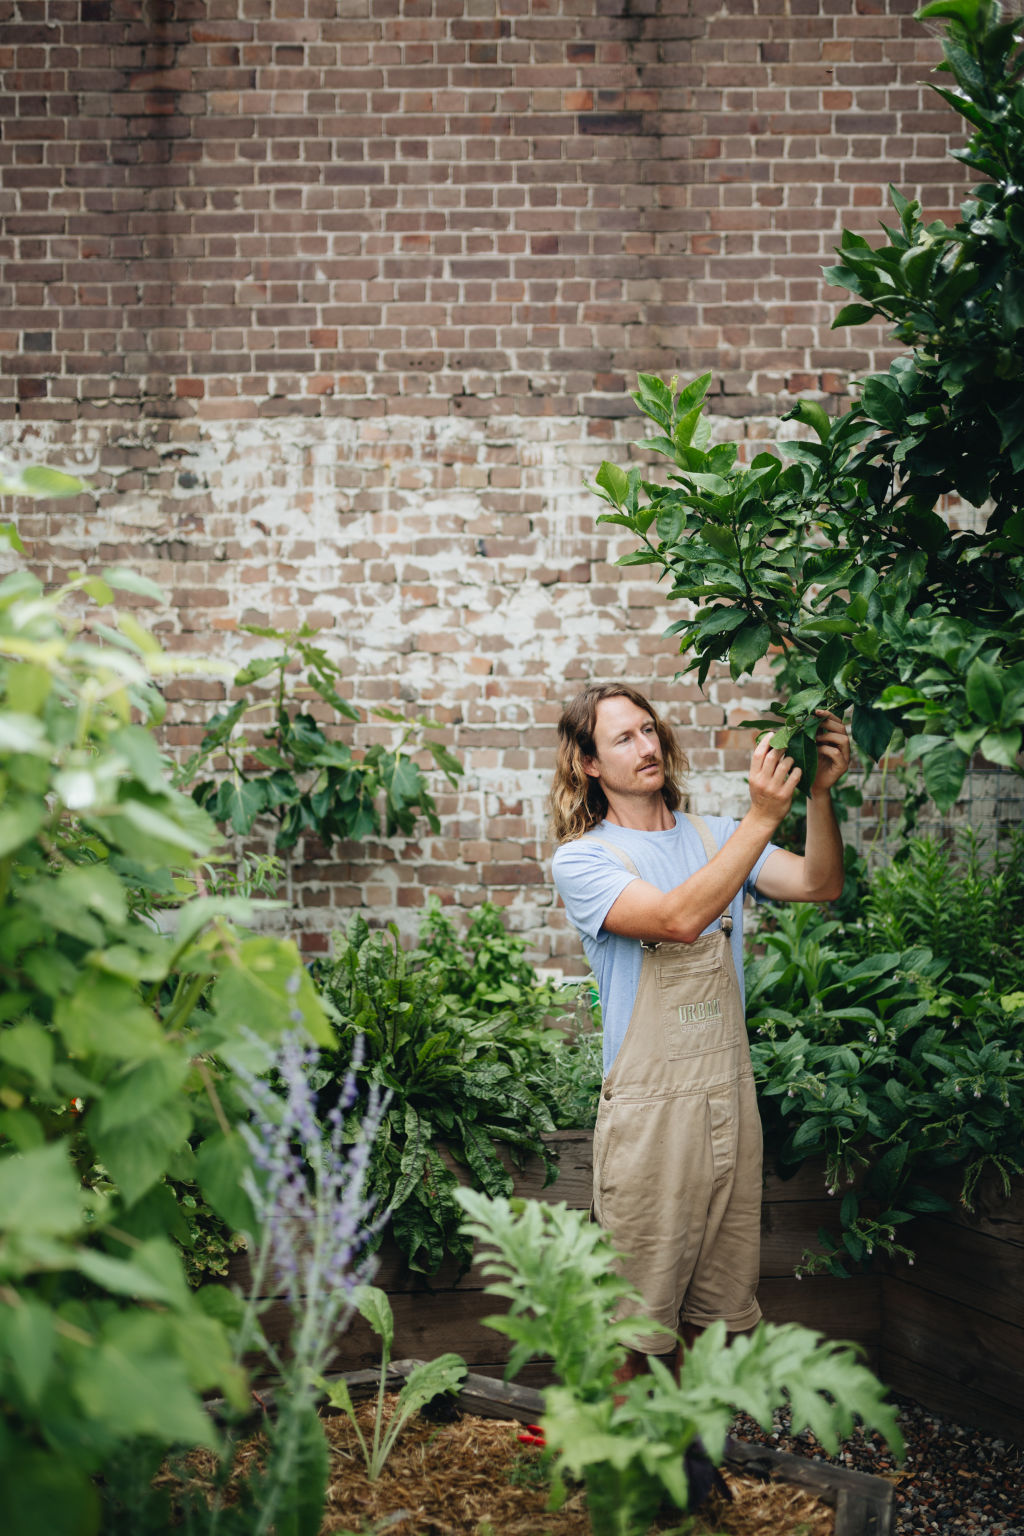 Urban Growers Article #1.